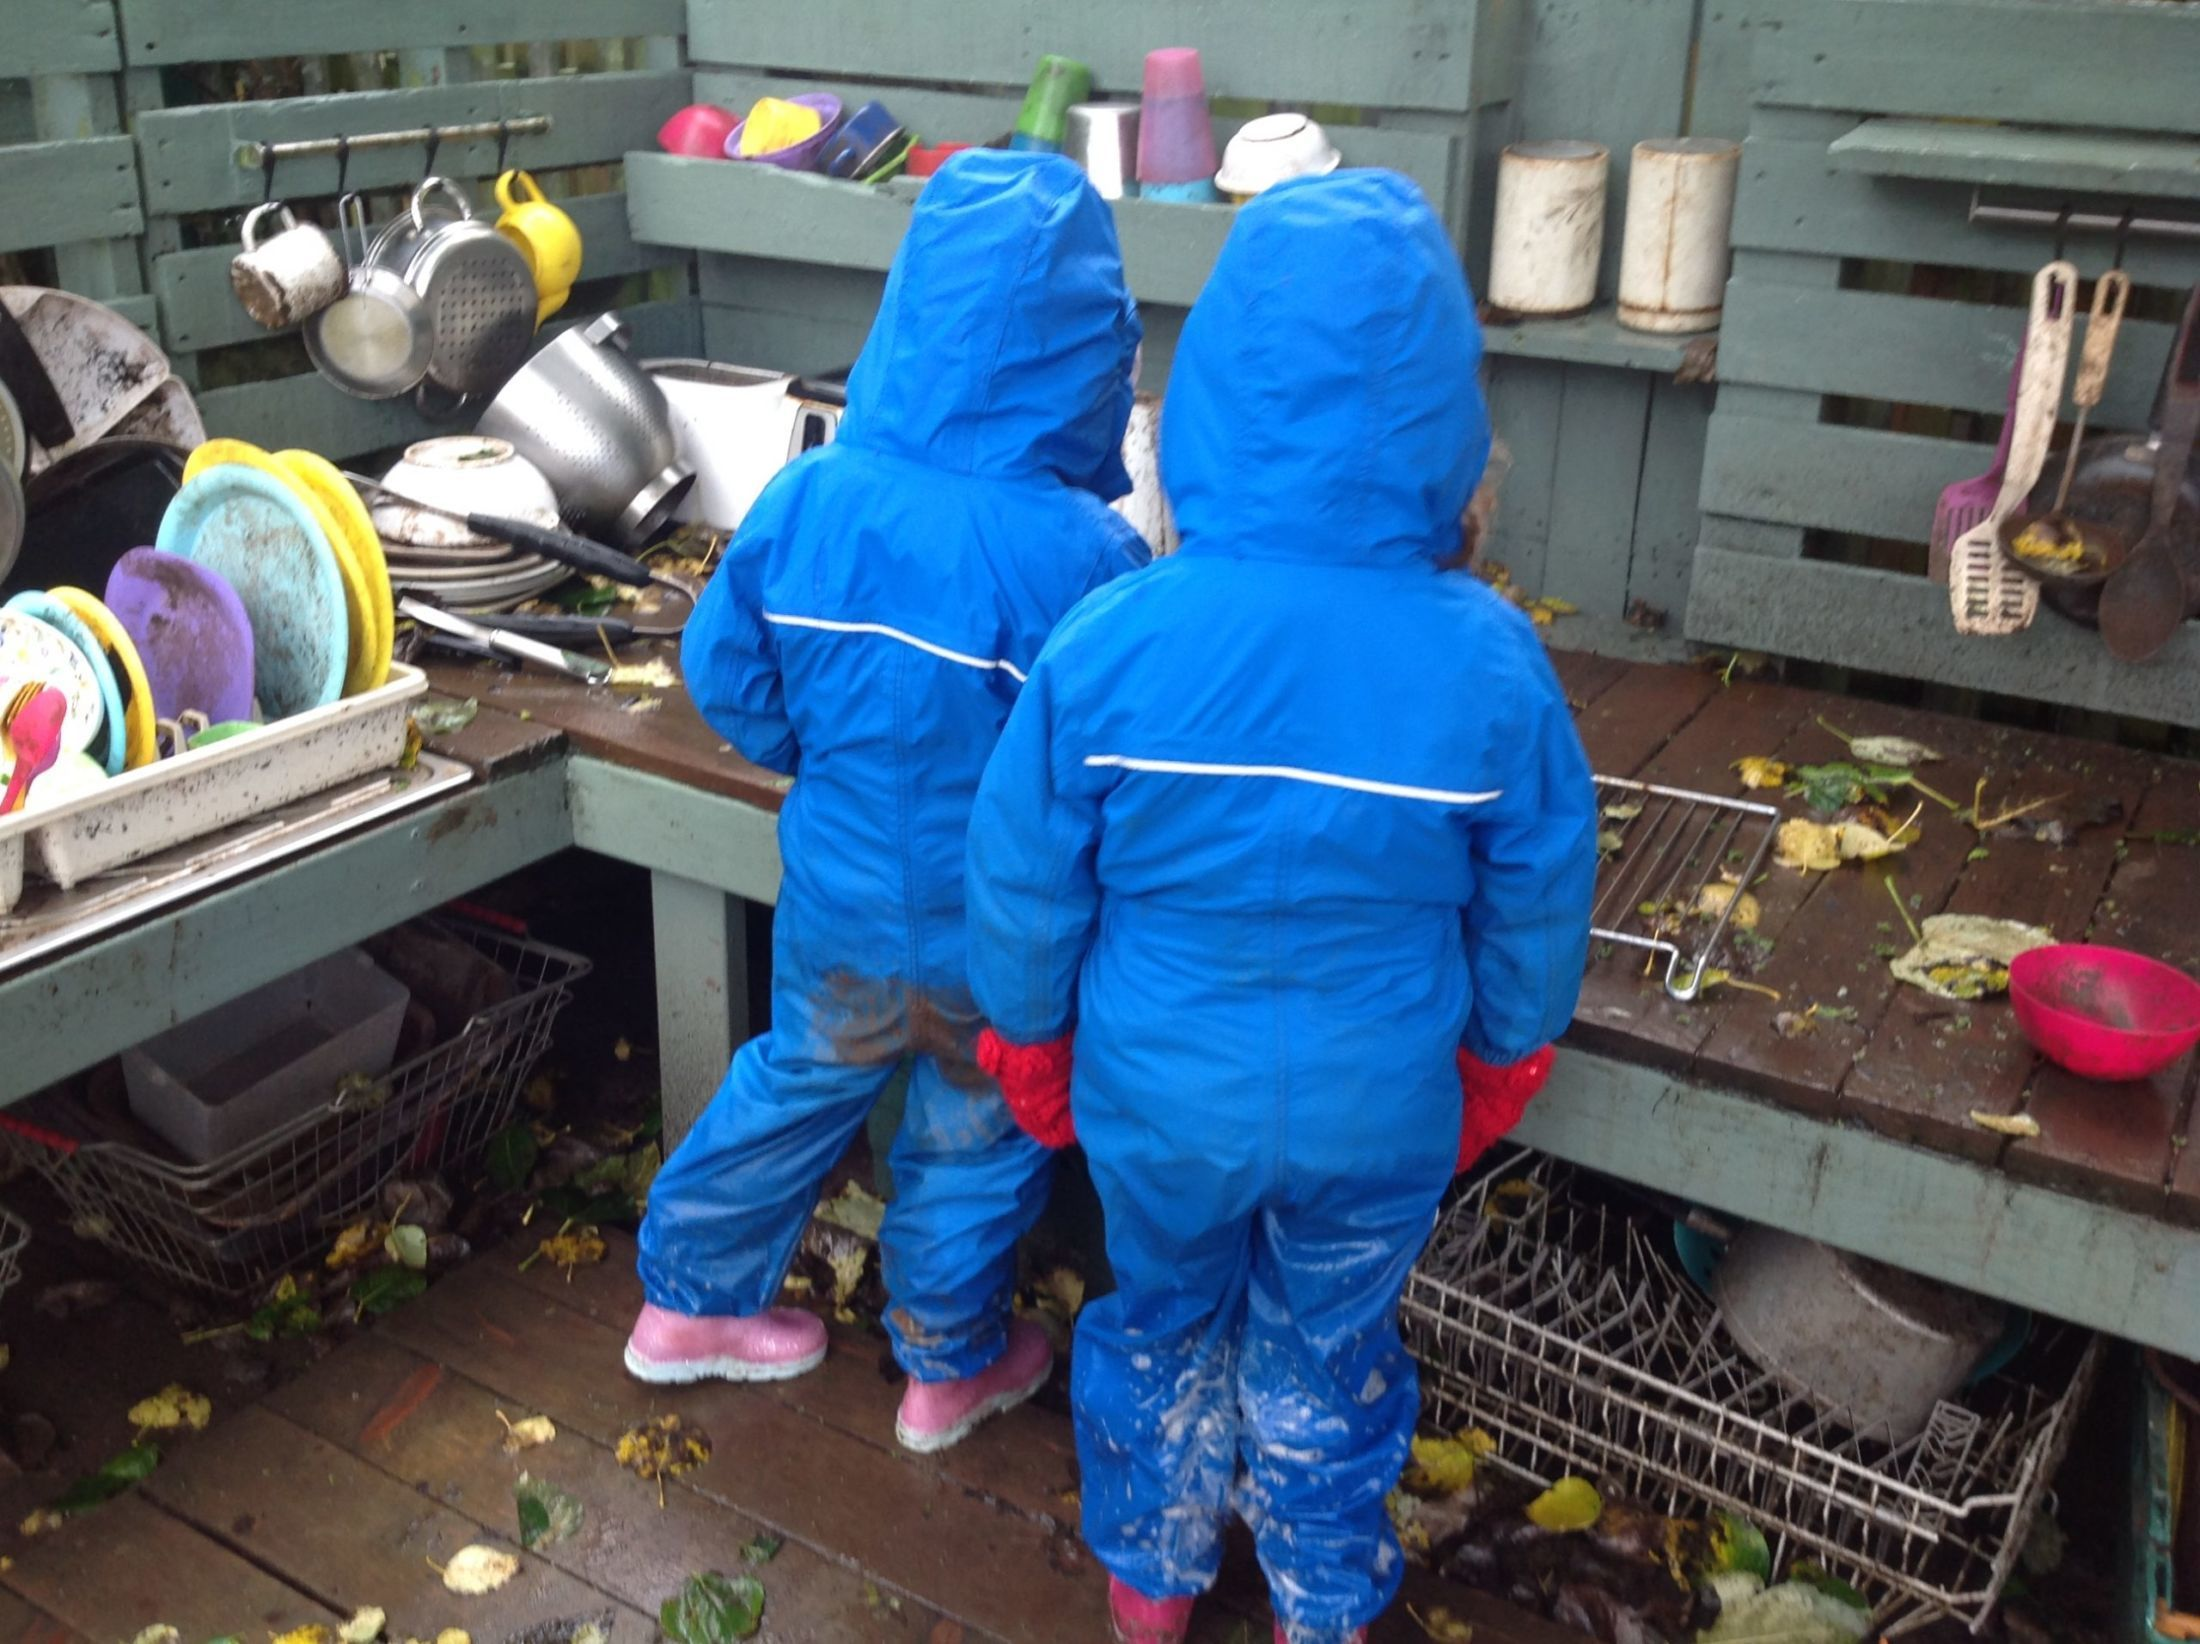 2 small children in all in e blue waterproof suits playing in a mud kitchen